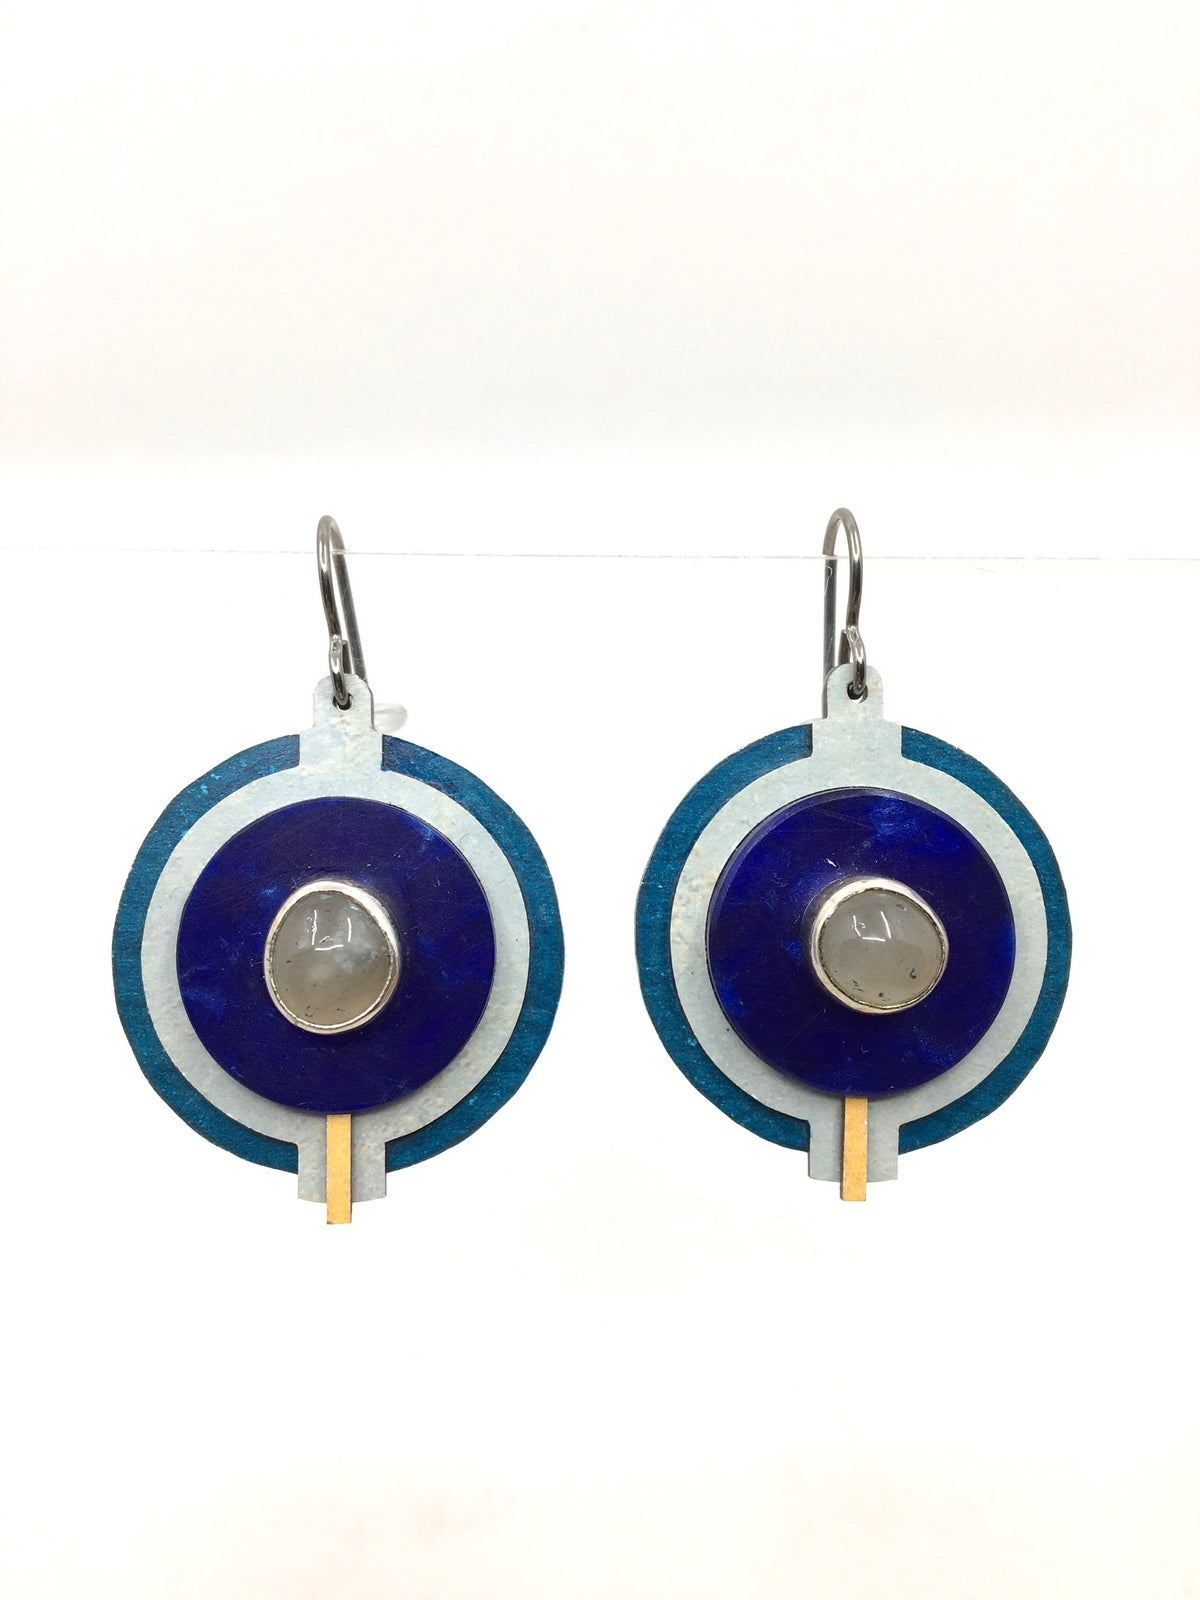 Concentric Circle Earrings by Michael Gleason